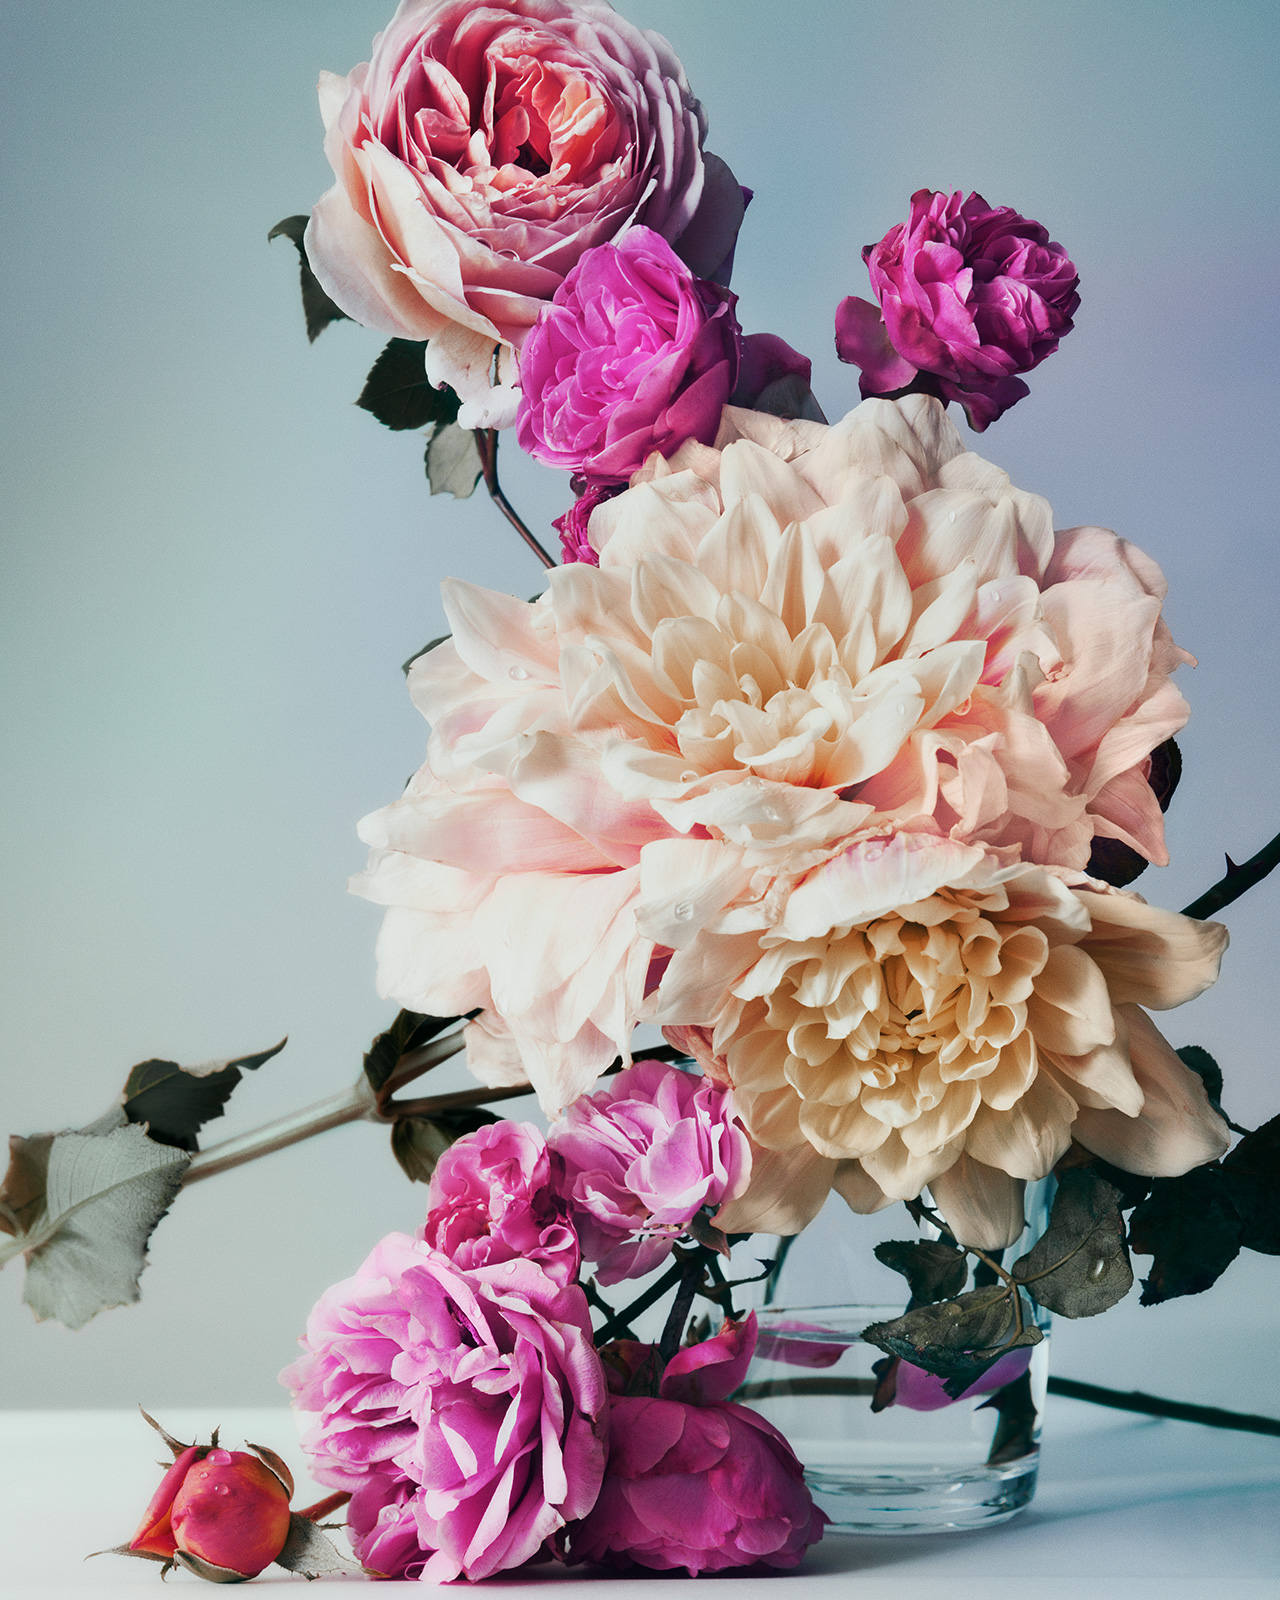 Frederik Lindstrm Studio Flowers For